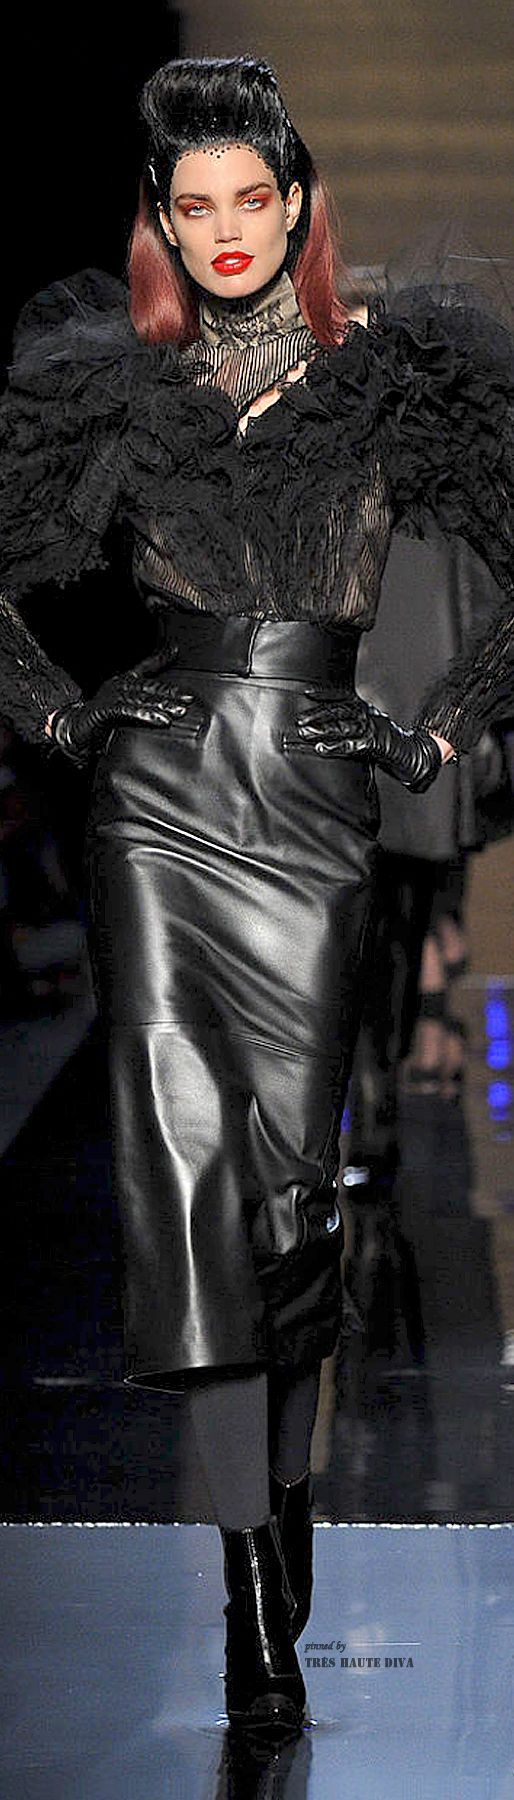 Jean Paul Gaultier Haute Couture Fall 2014 OMFG it's me over & over again. Bless you Jean Paul! ♋️